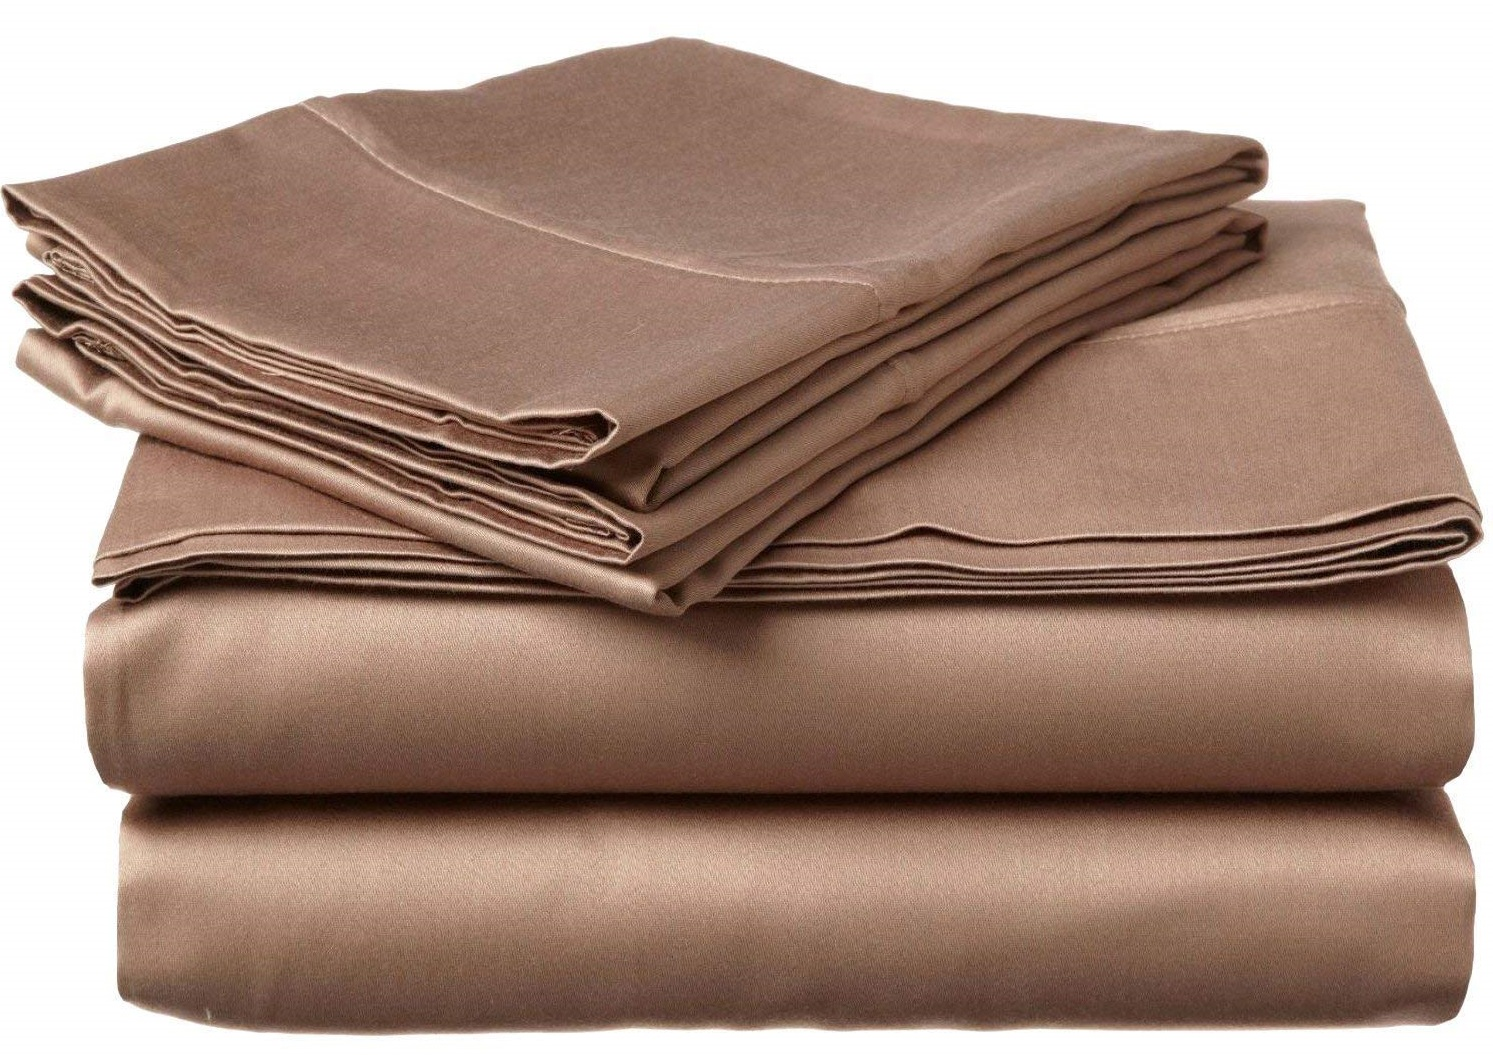 Image of LaxLinen 100% Egyptian Cotton Sheets - Microfiber Sheets vs Cotton